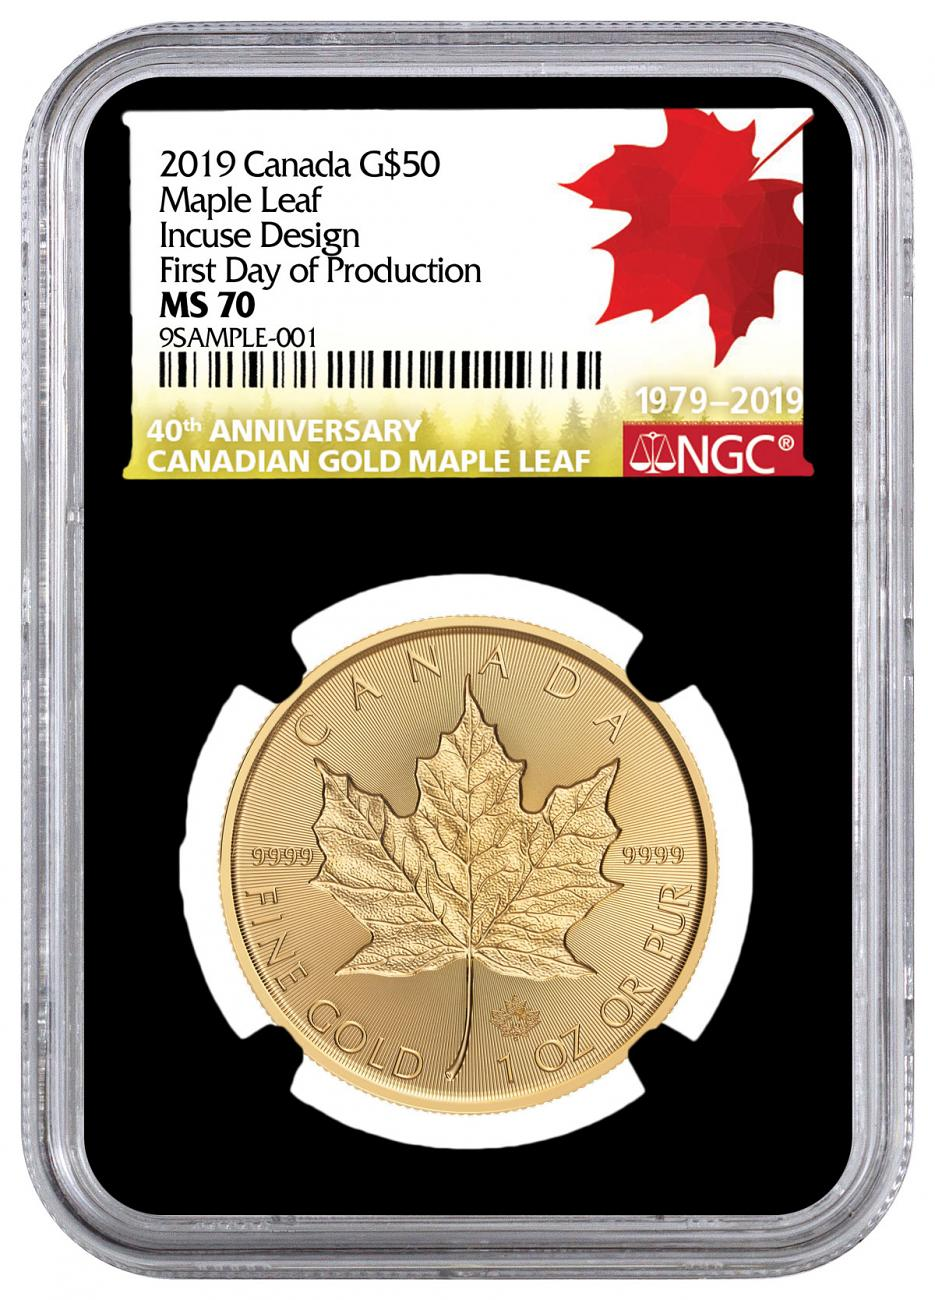 2019 Canada 1 oz Gold Maple Leaf - Incuse $50 Coin Scarce and Unique Coin Division NGC MS70 First Day of Production Black Core Holder Anniversary Gold Maple Leaf Label